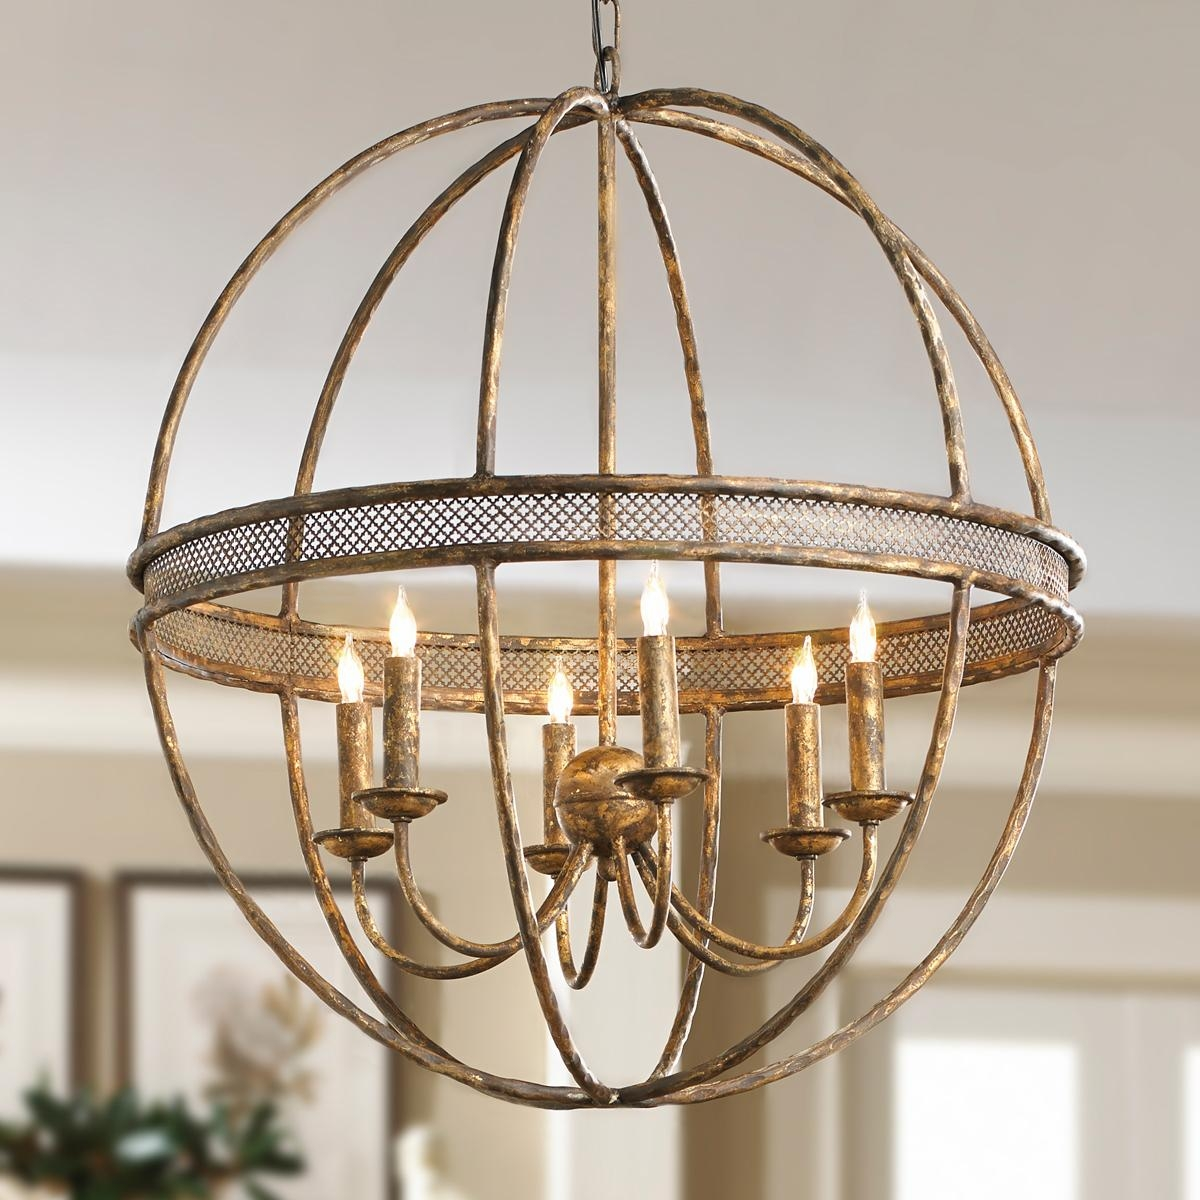 Lattice Banded Sphere Chandelier Aged Golden Lattice Adds The With Regard To Metal Sphere Chandelier (#7 of 12)